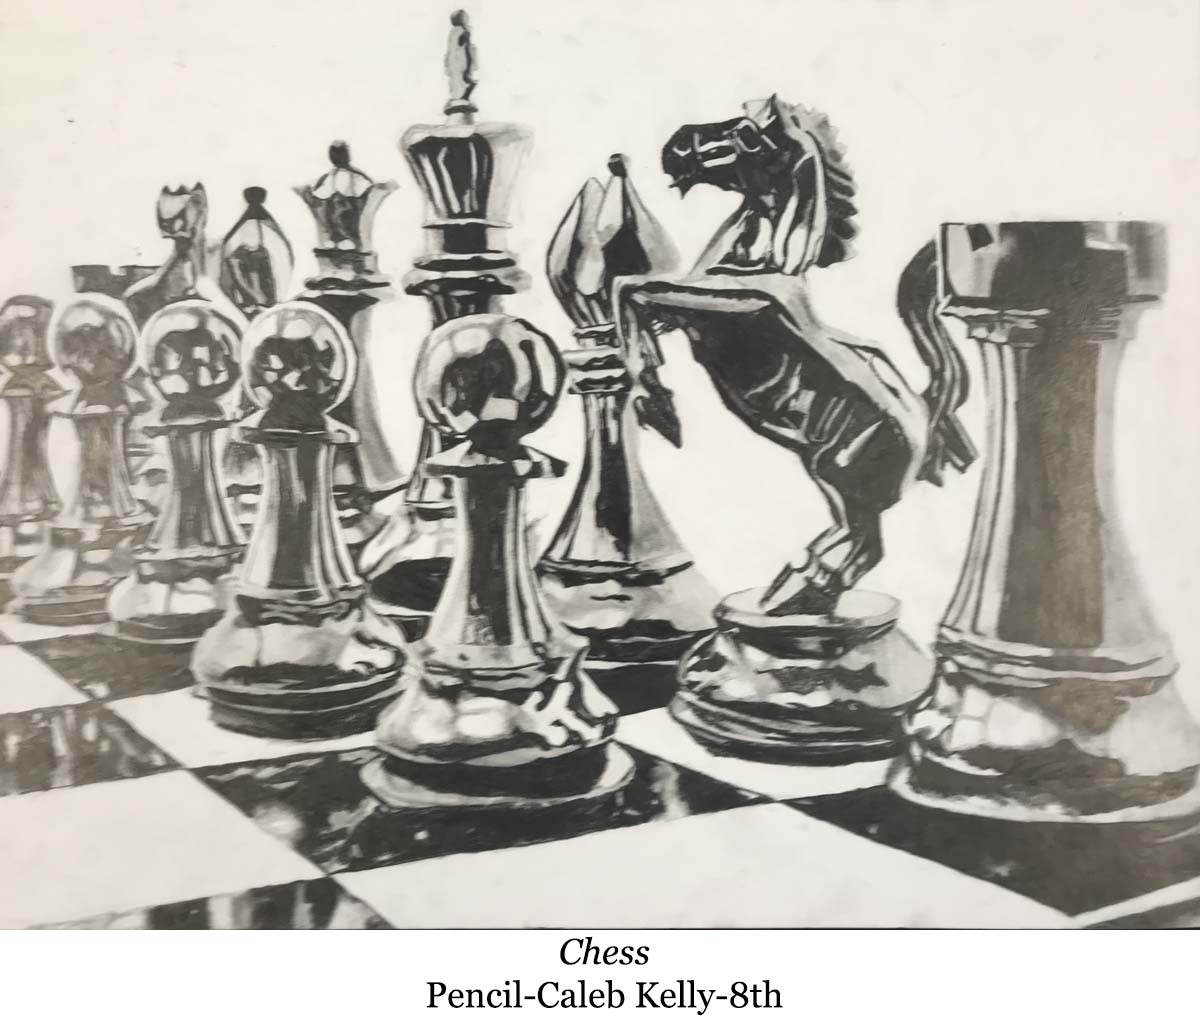 1587088201-chess-pencil-caleb_kelly-8th